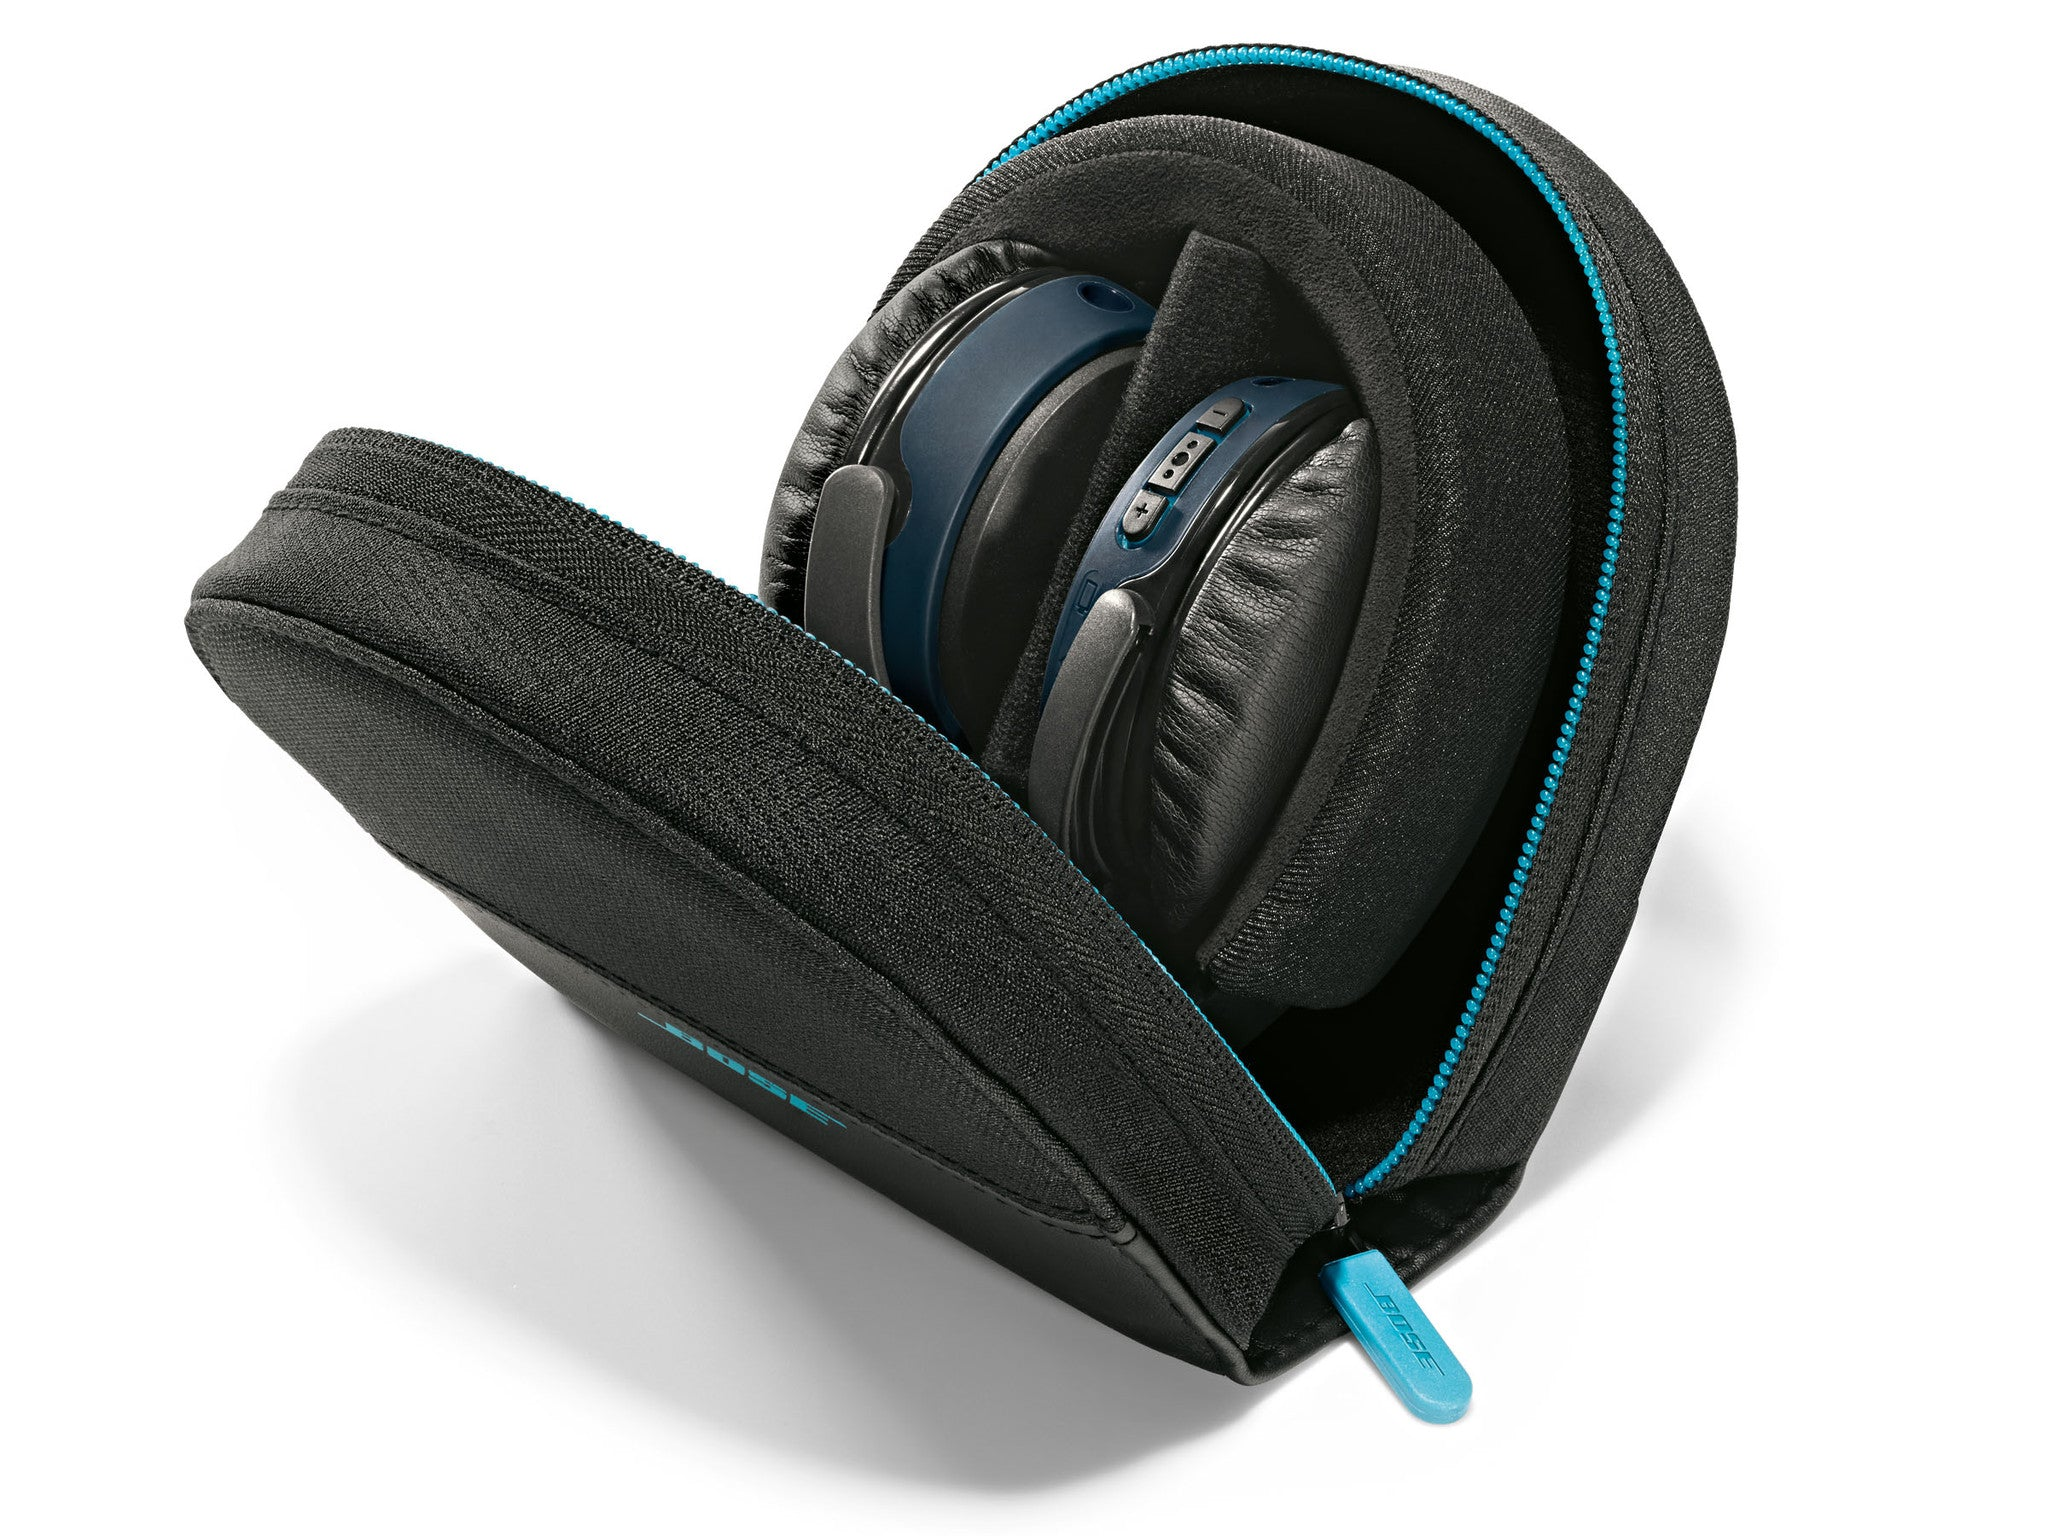 Bose® SoundLink® on-ear Bluetooth® headphones